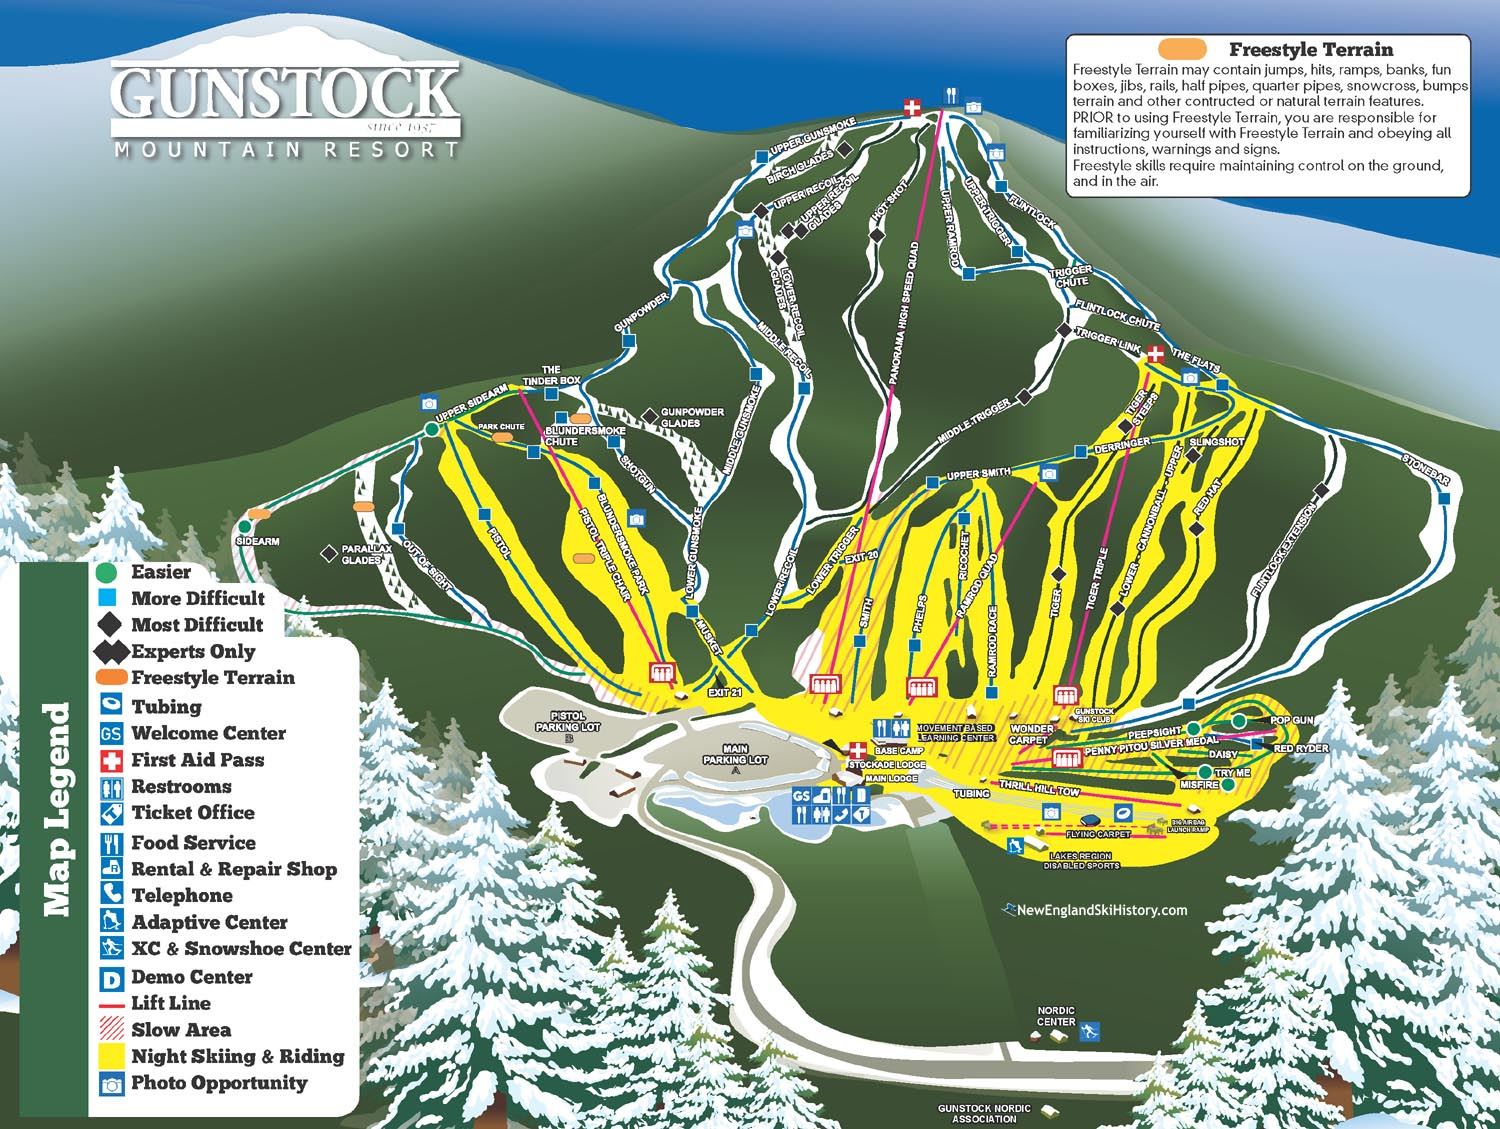 gunstock trail map with Viewmap on Sugarloaf also Mohawk Mountain additionally Xc Run Series moreover Livefreeandhikenh blogspot moreover July 16 2016 Gunstock Redlining.